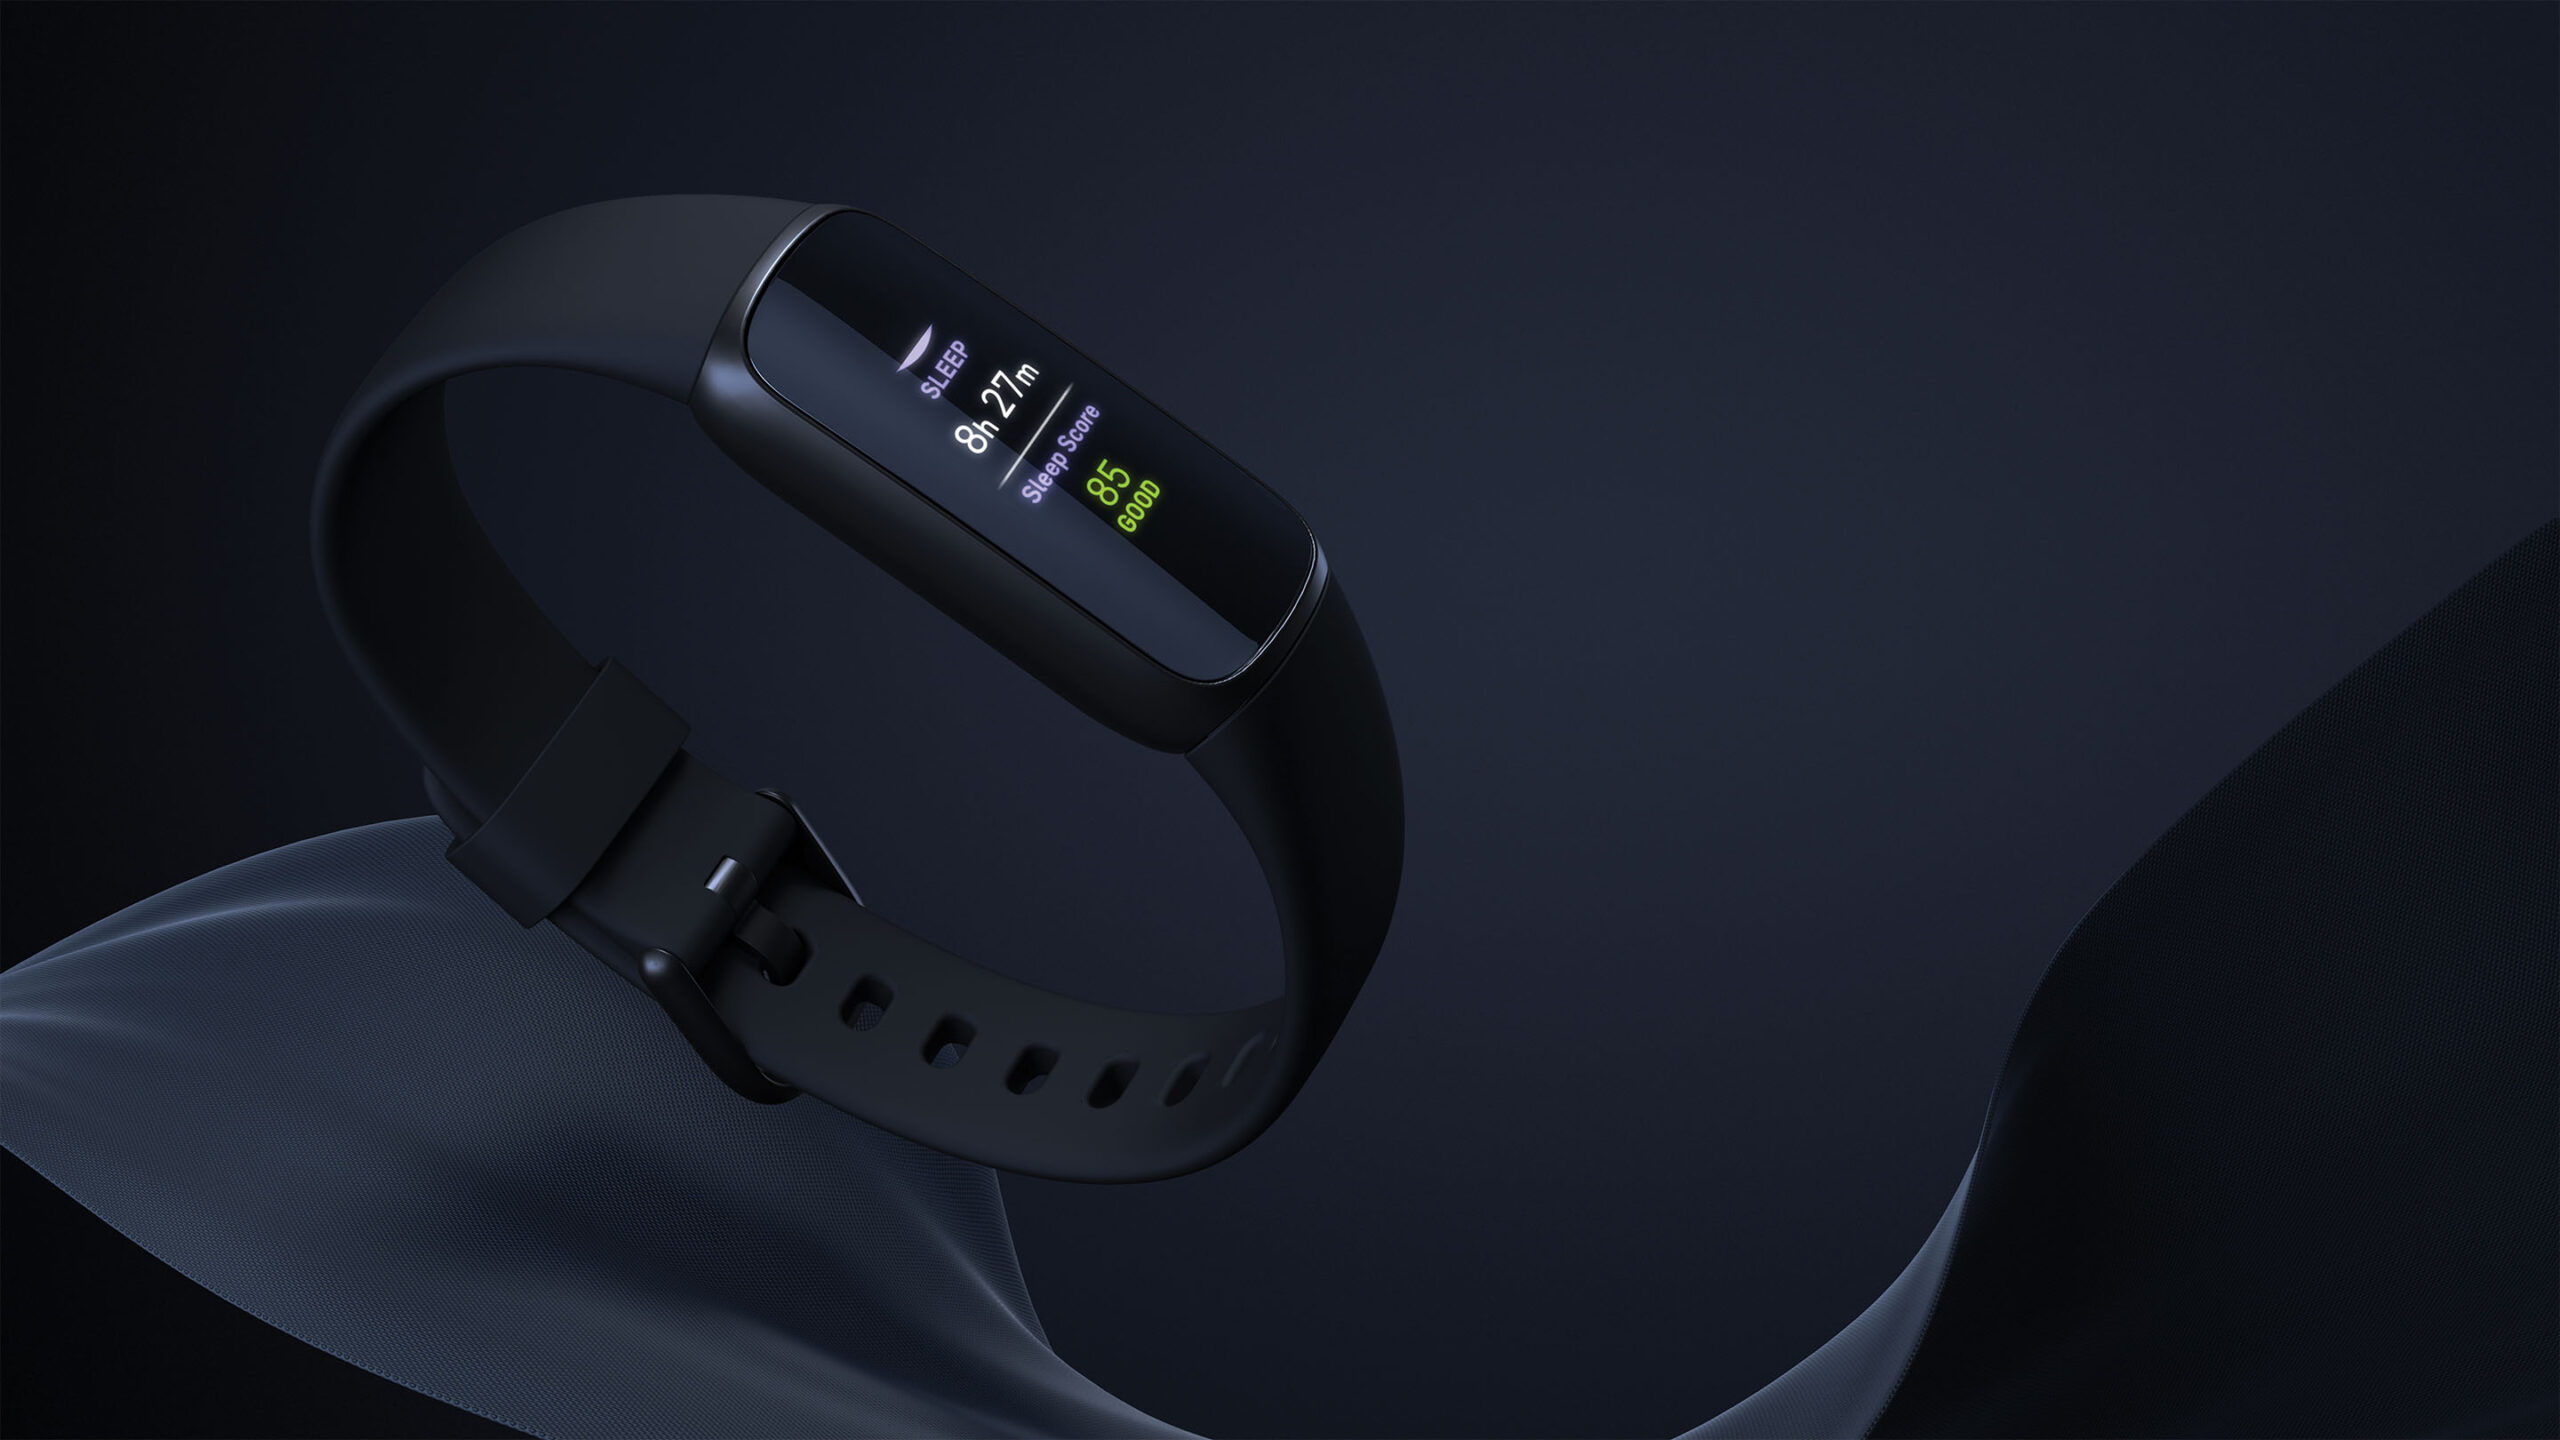 Fitbit's new 'Luxe' tracker brings style and health to your wrist